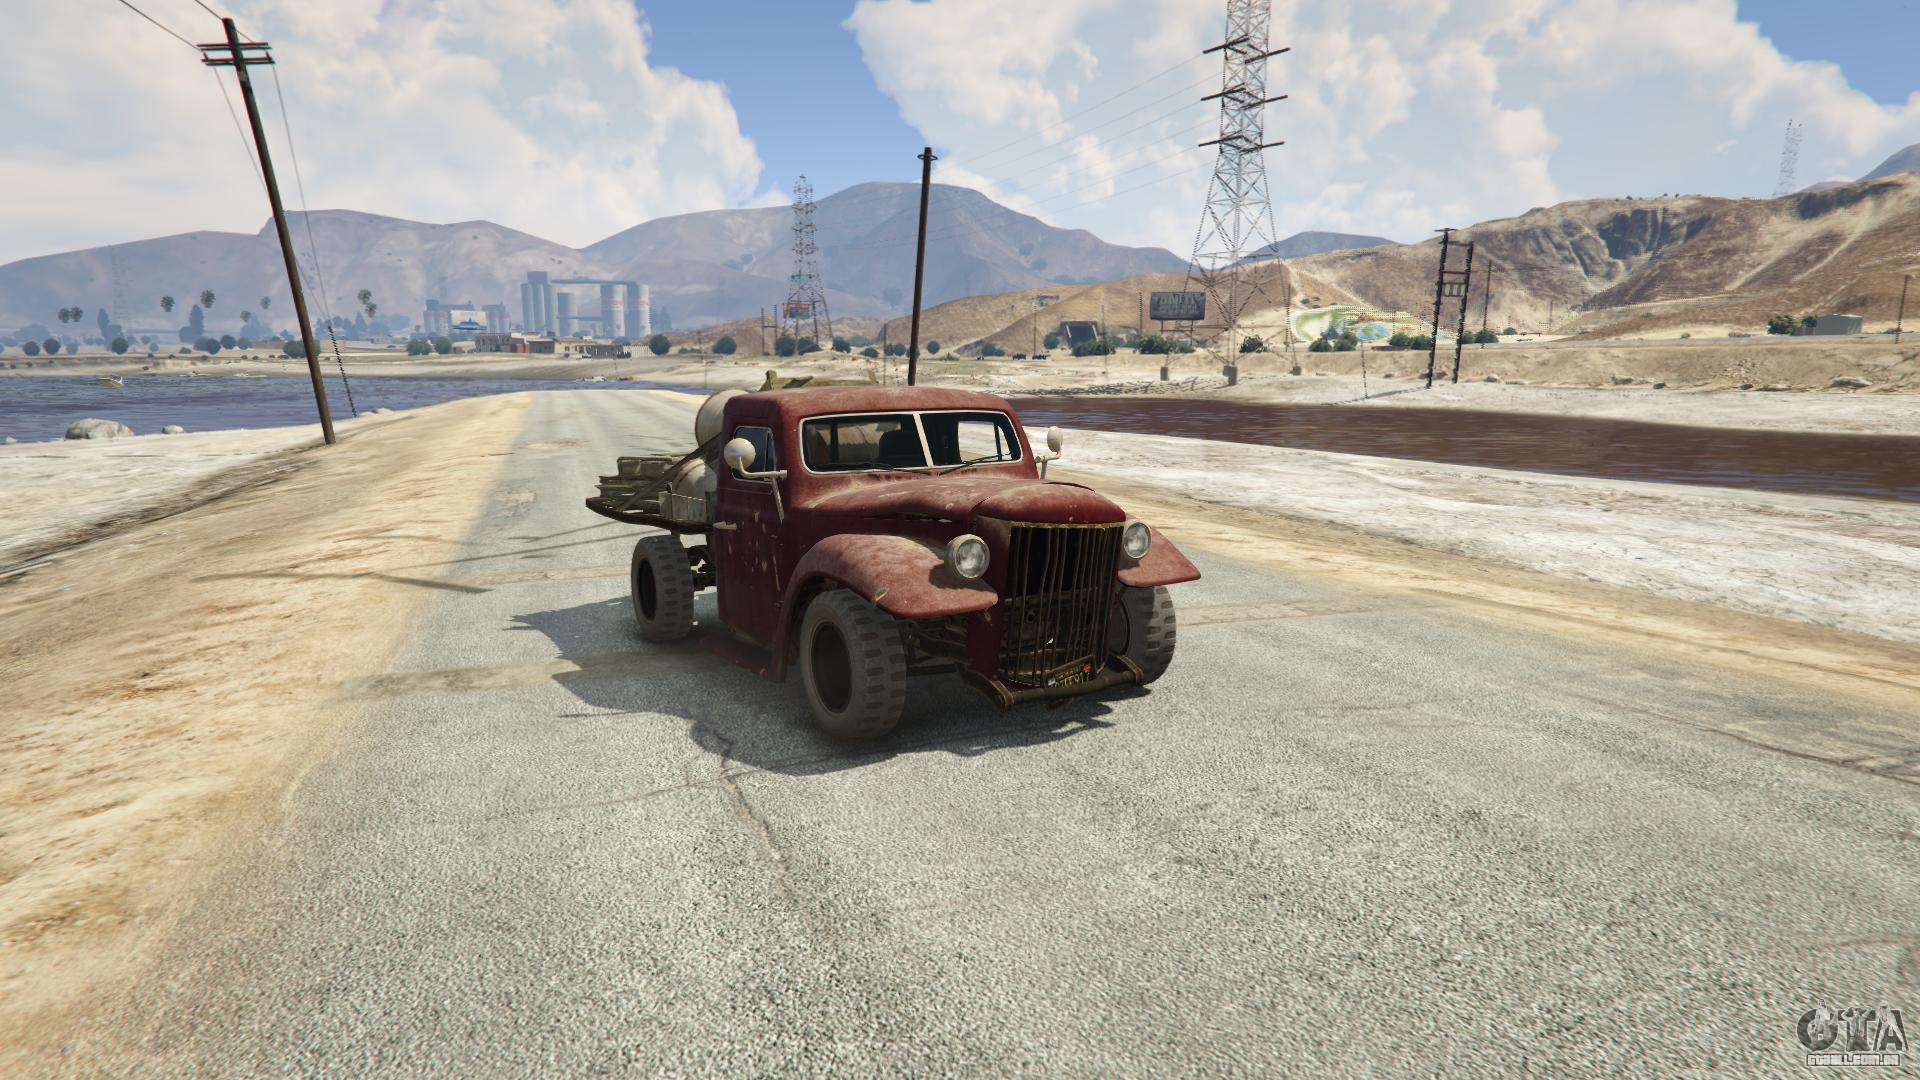 Rat-Loader de GTA 5 - vista frontal